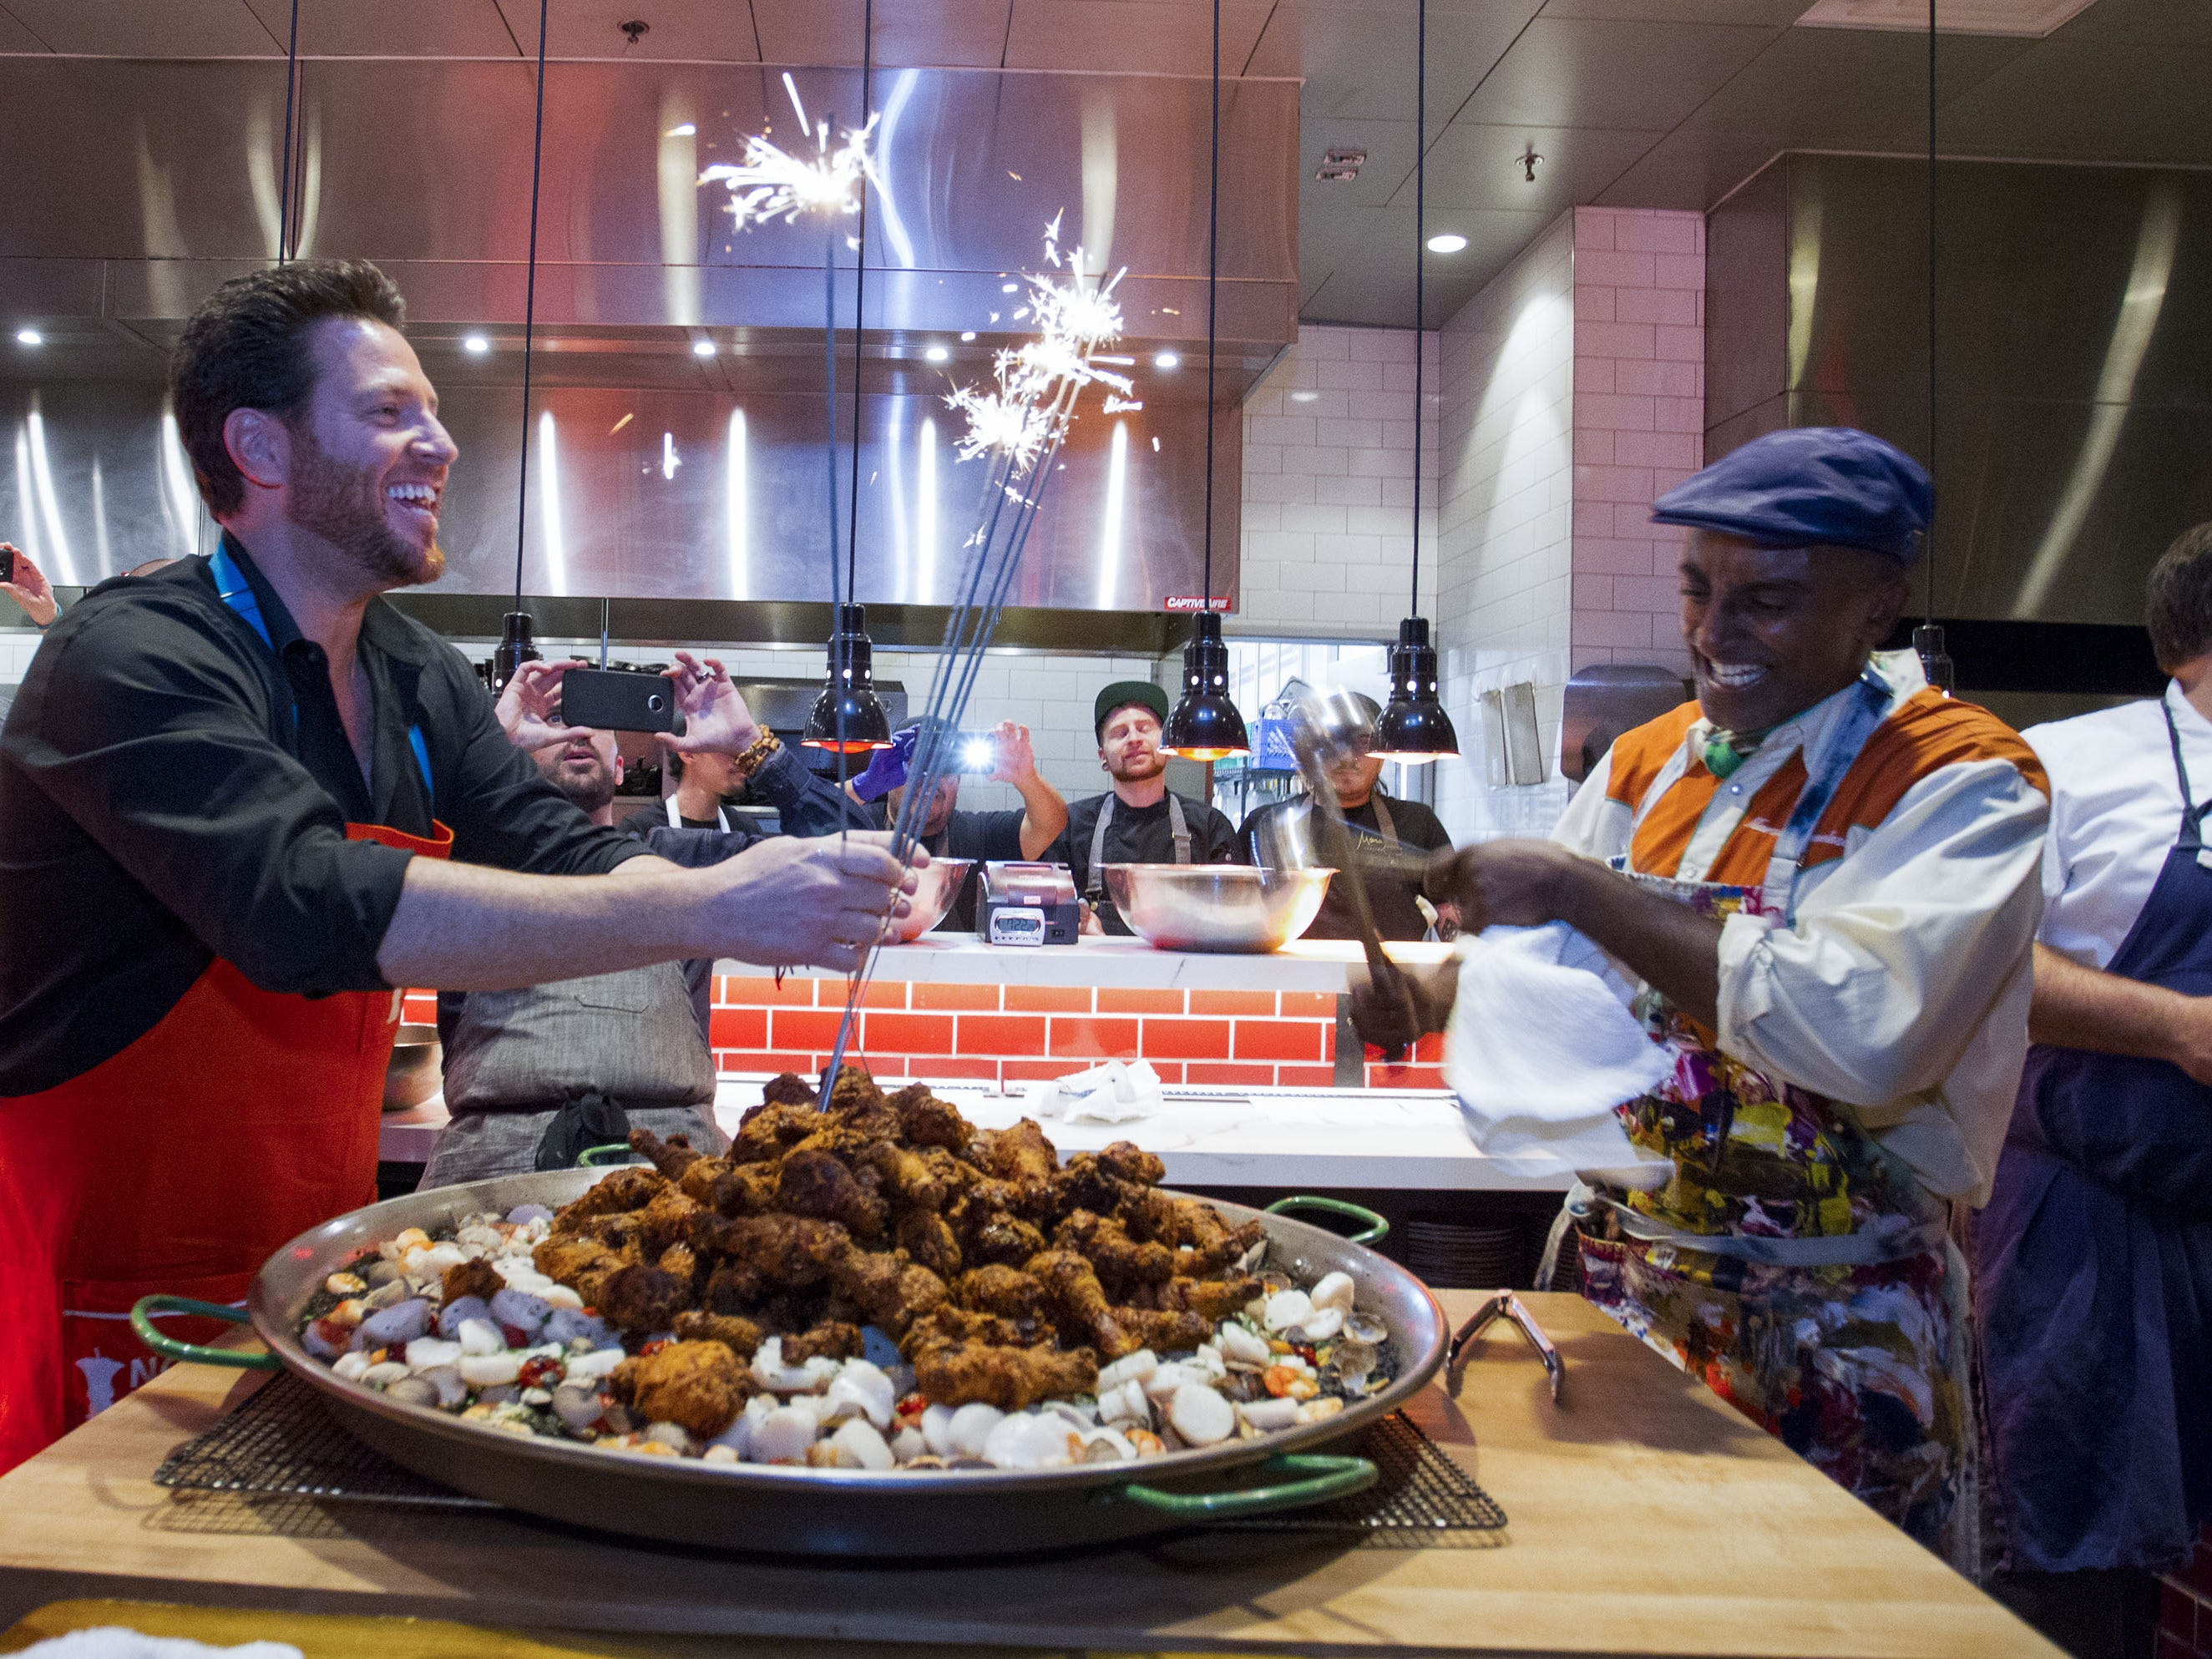 Chefs Scott Conant and Marcus Samuelsson light sparklers as they prepare to serve fried chicken paella to guests during the exclusive kickoff dinner event at Mora Italian for azcentral Wine & Food Experience.